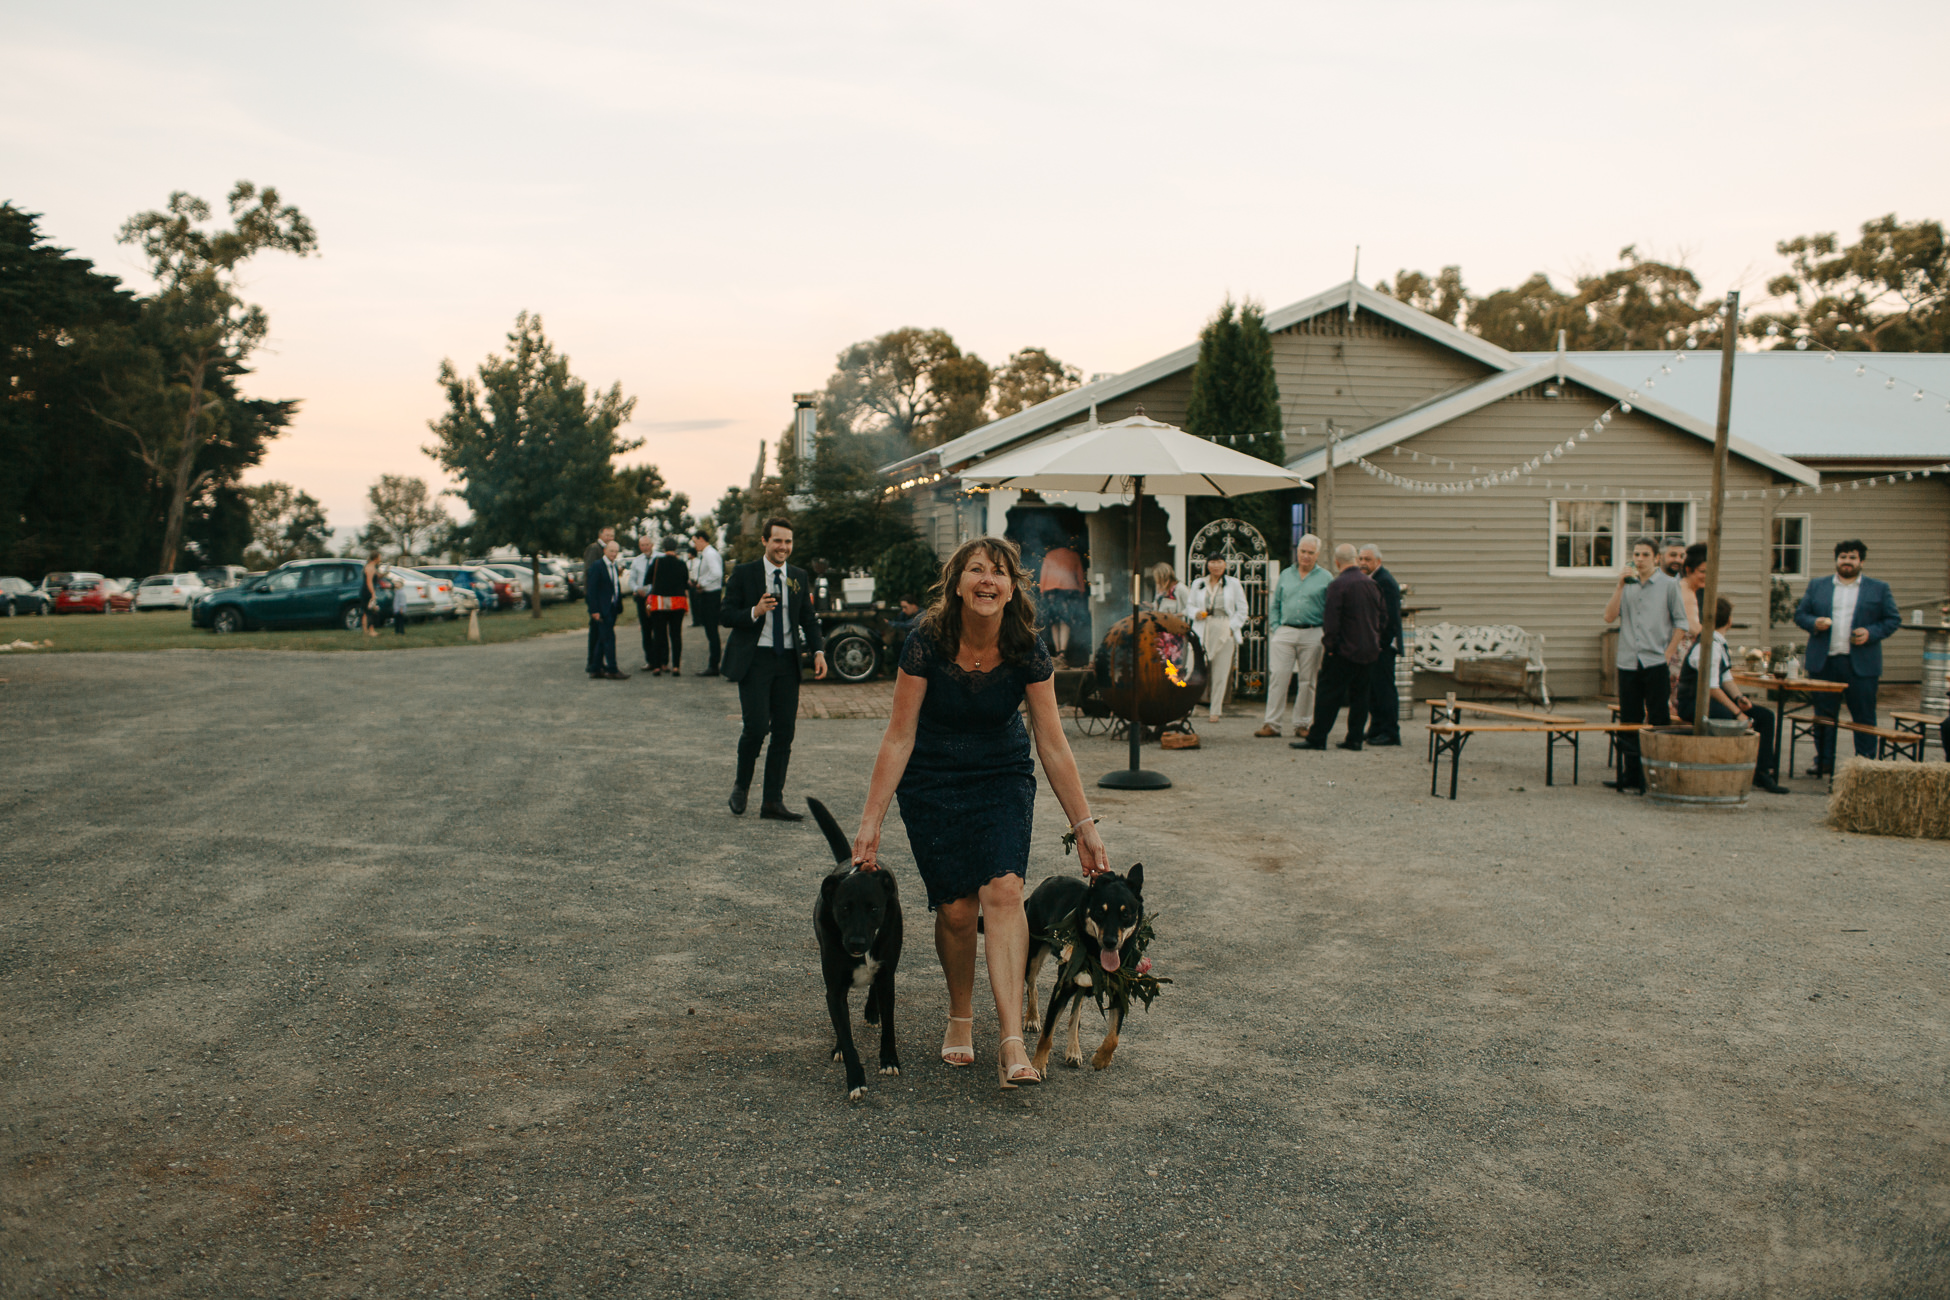 Two dogs at a wedding - thinking-of-having-your-dog-at-your-wedding?